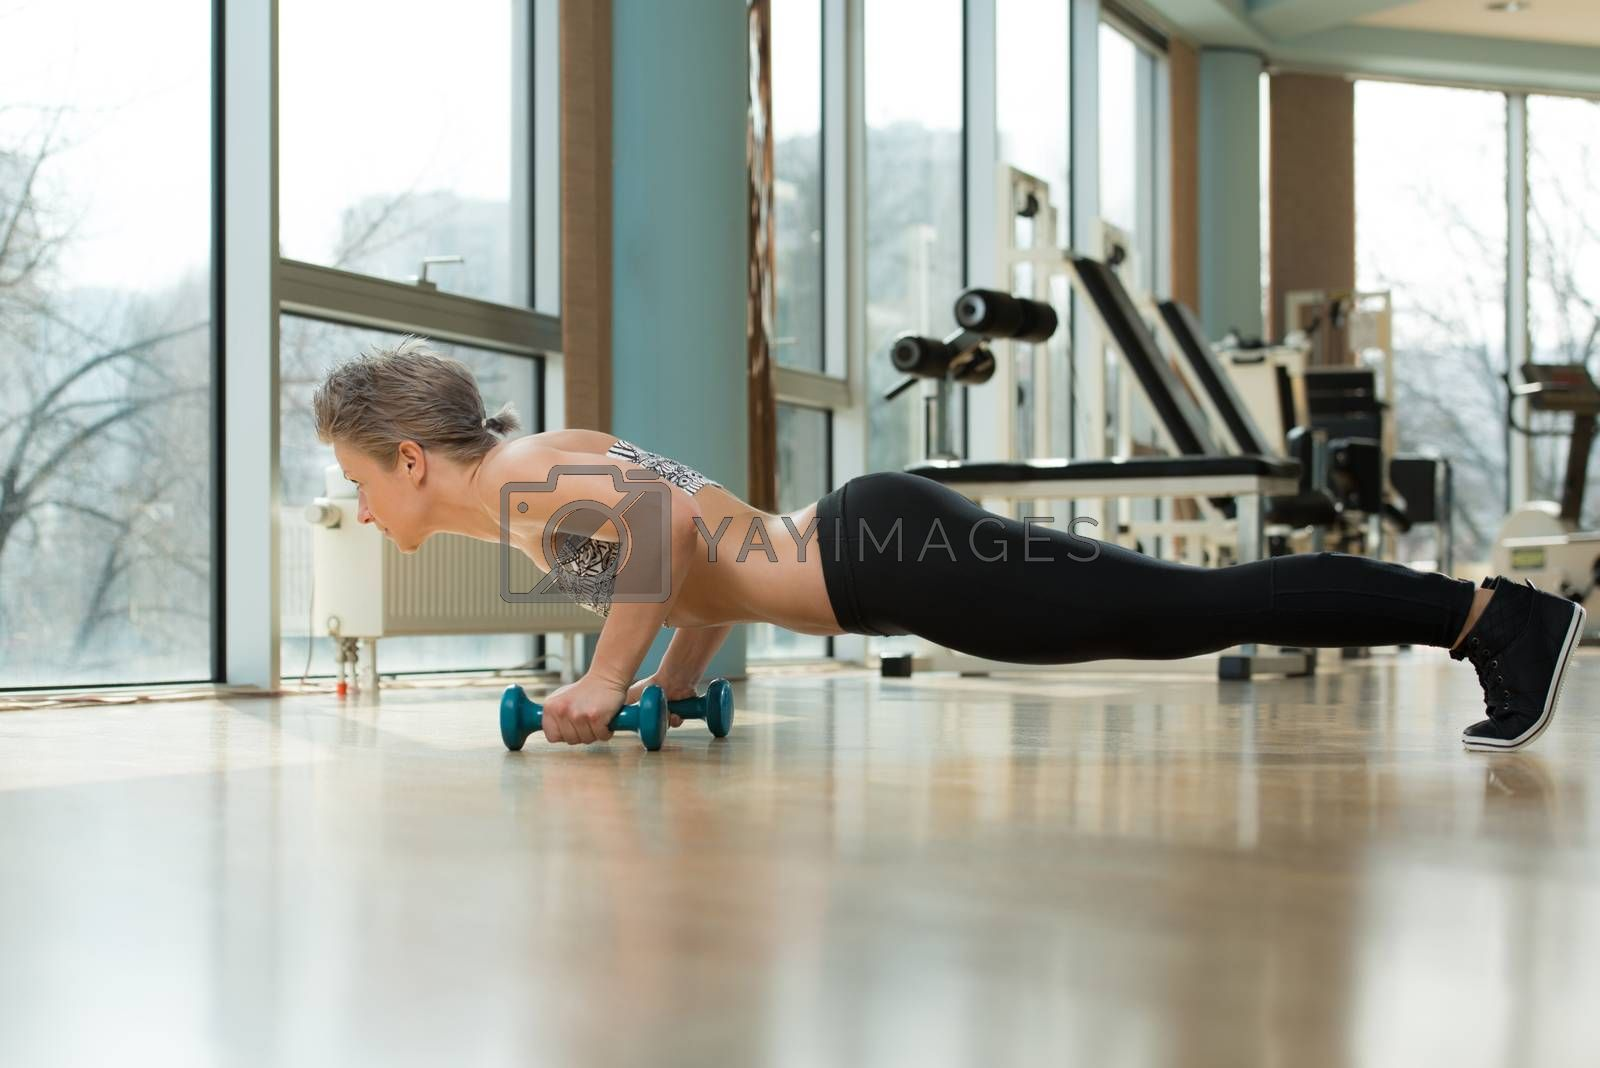 Royalty free image of Young Woman Doing Press Ups In Healthy Club by JalePhoto